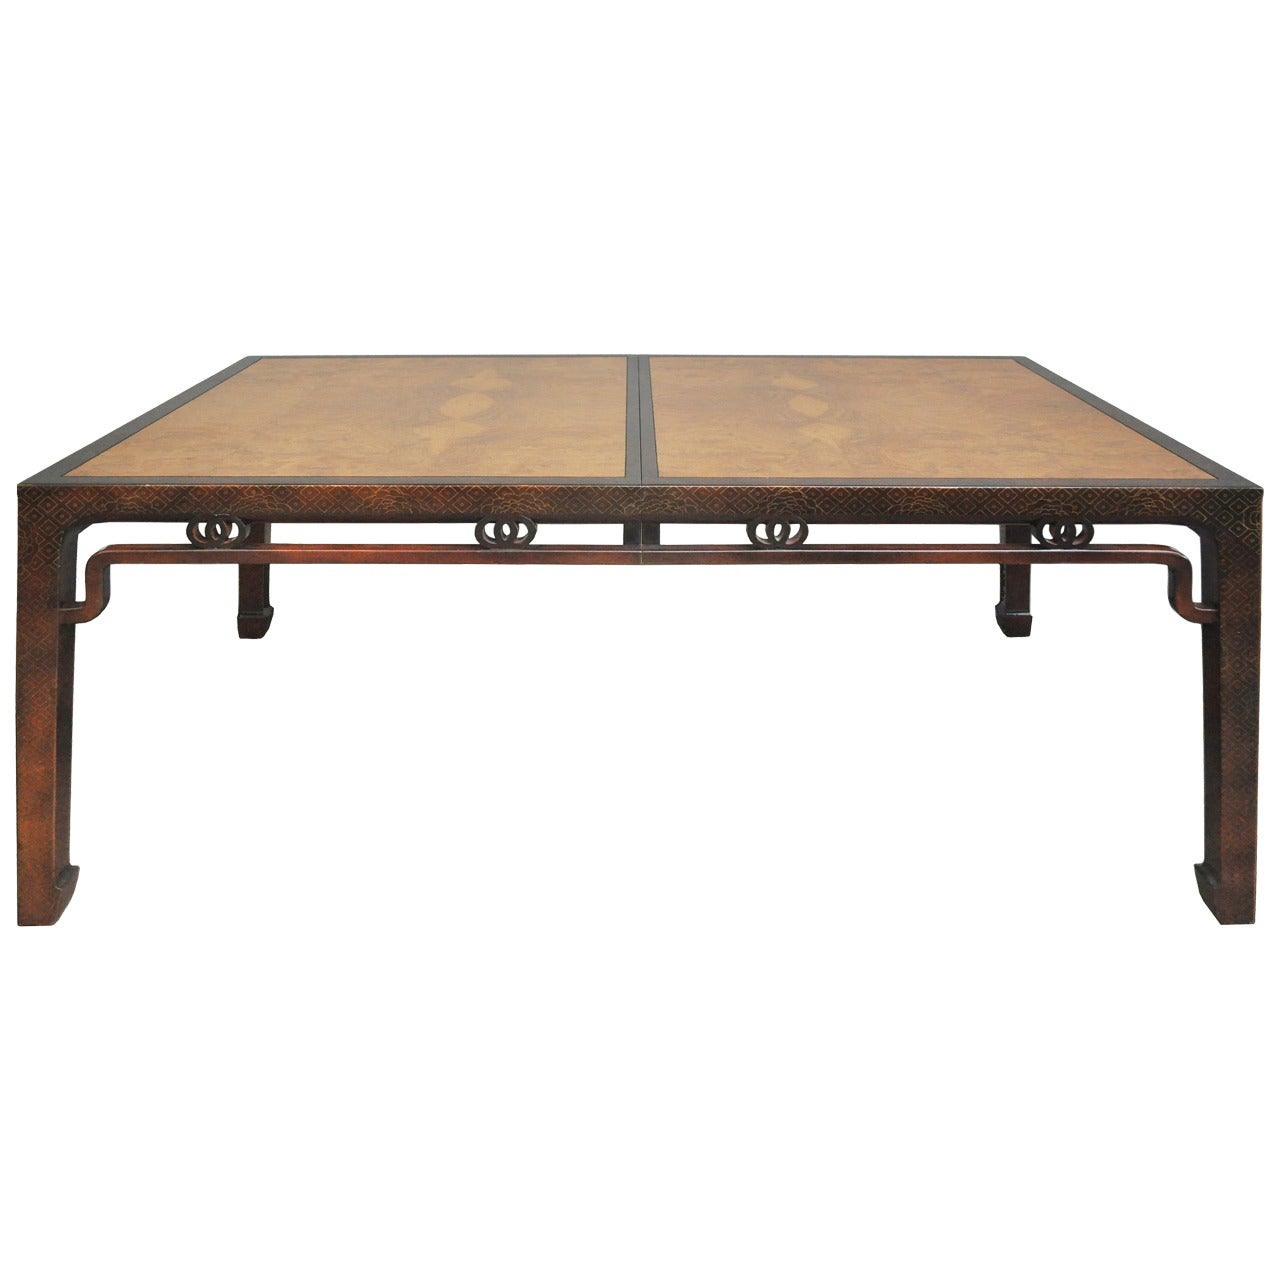 Baker Furniture Chinoiserie Dining Table With Leaves For Sale At 1stdibs